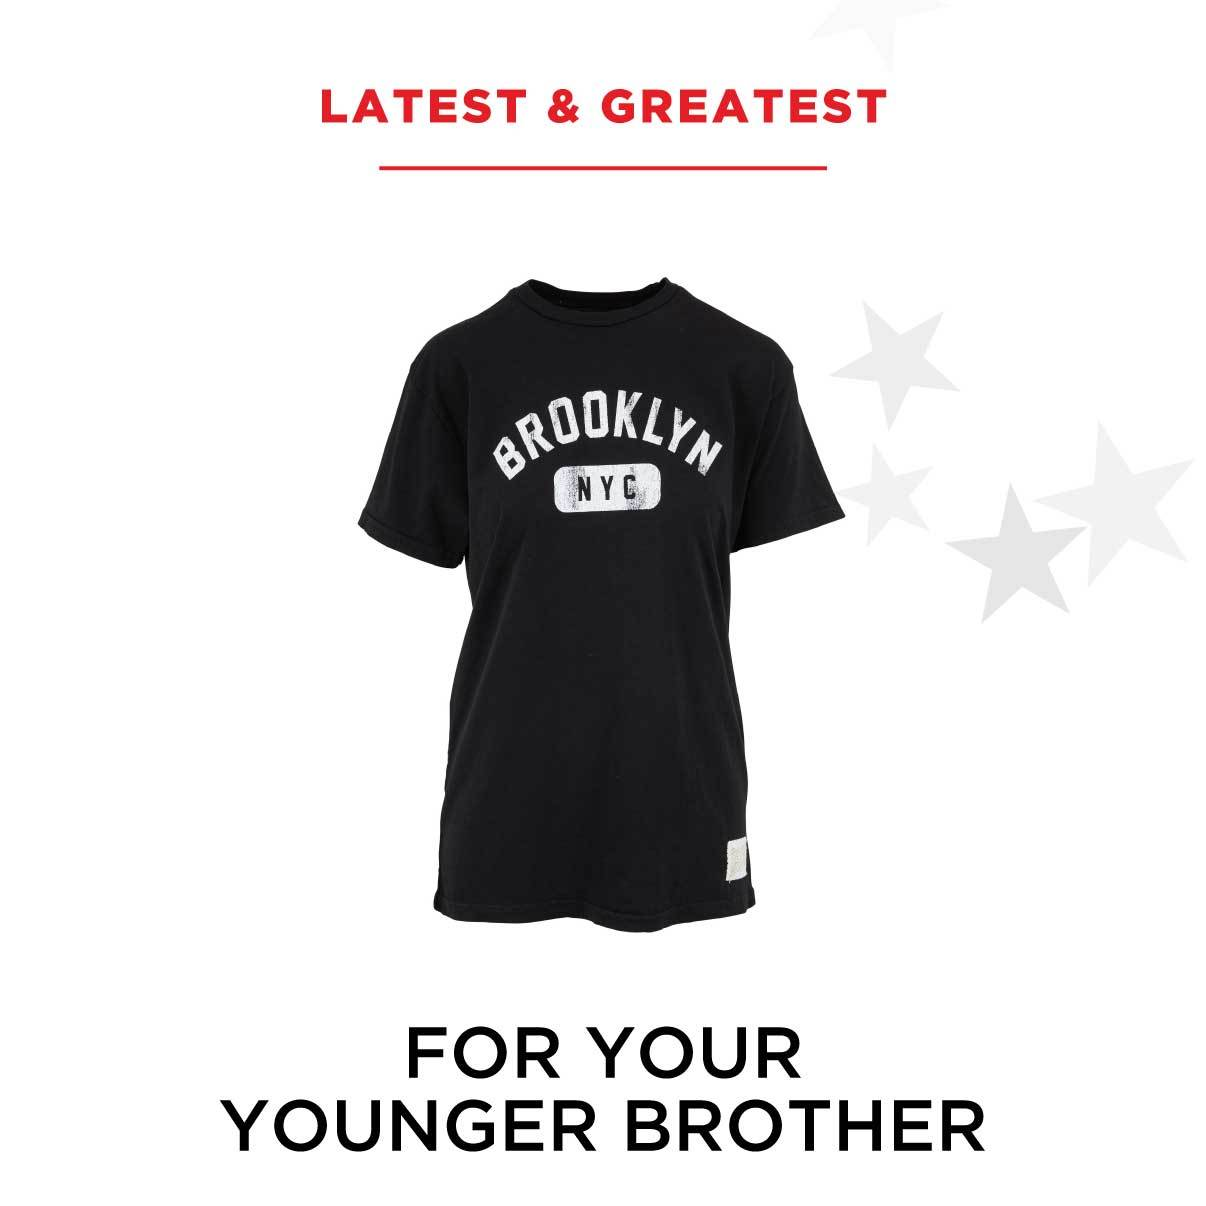 Best Gifts for Your Younger Brother